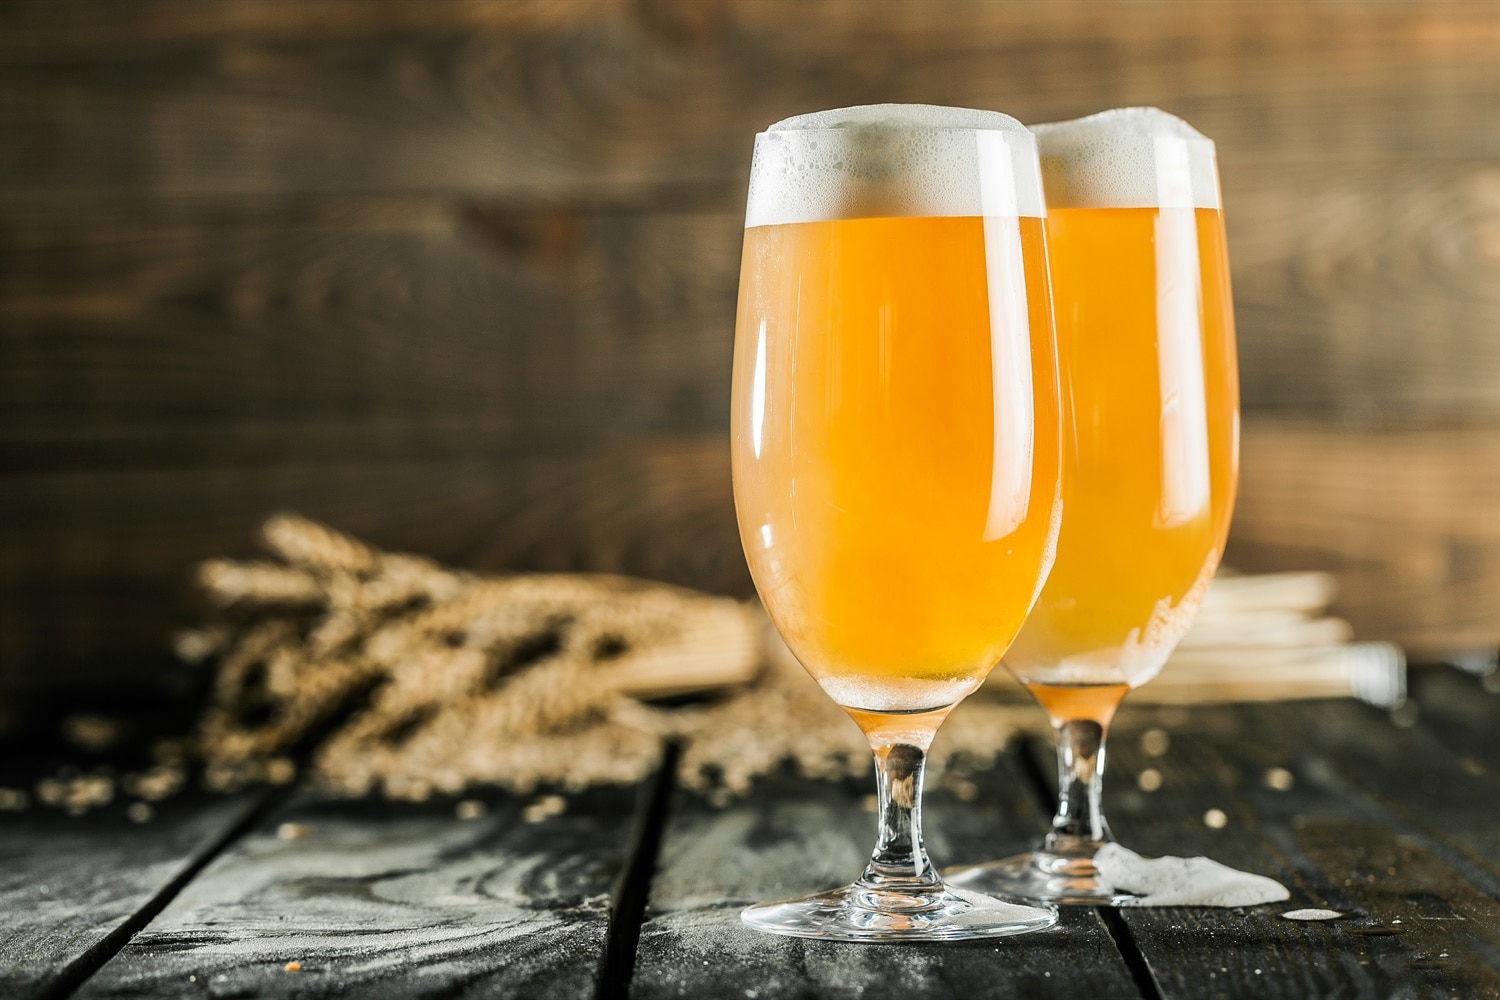 How to Choose the Healthiest Beer